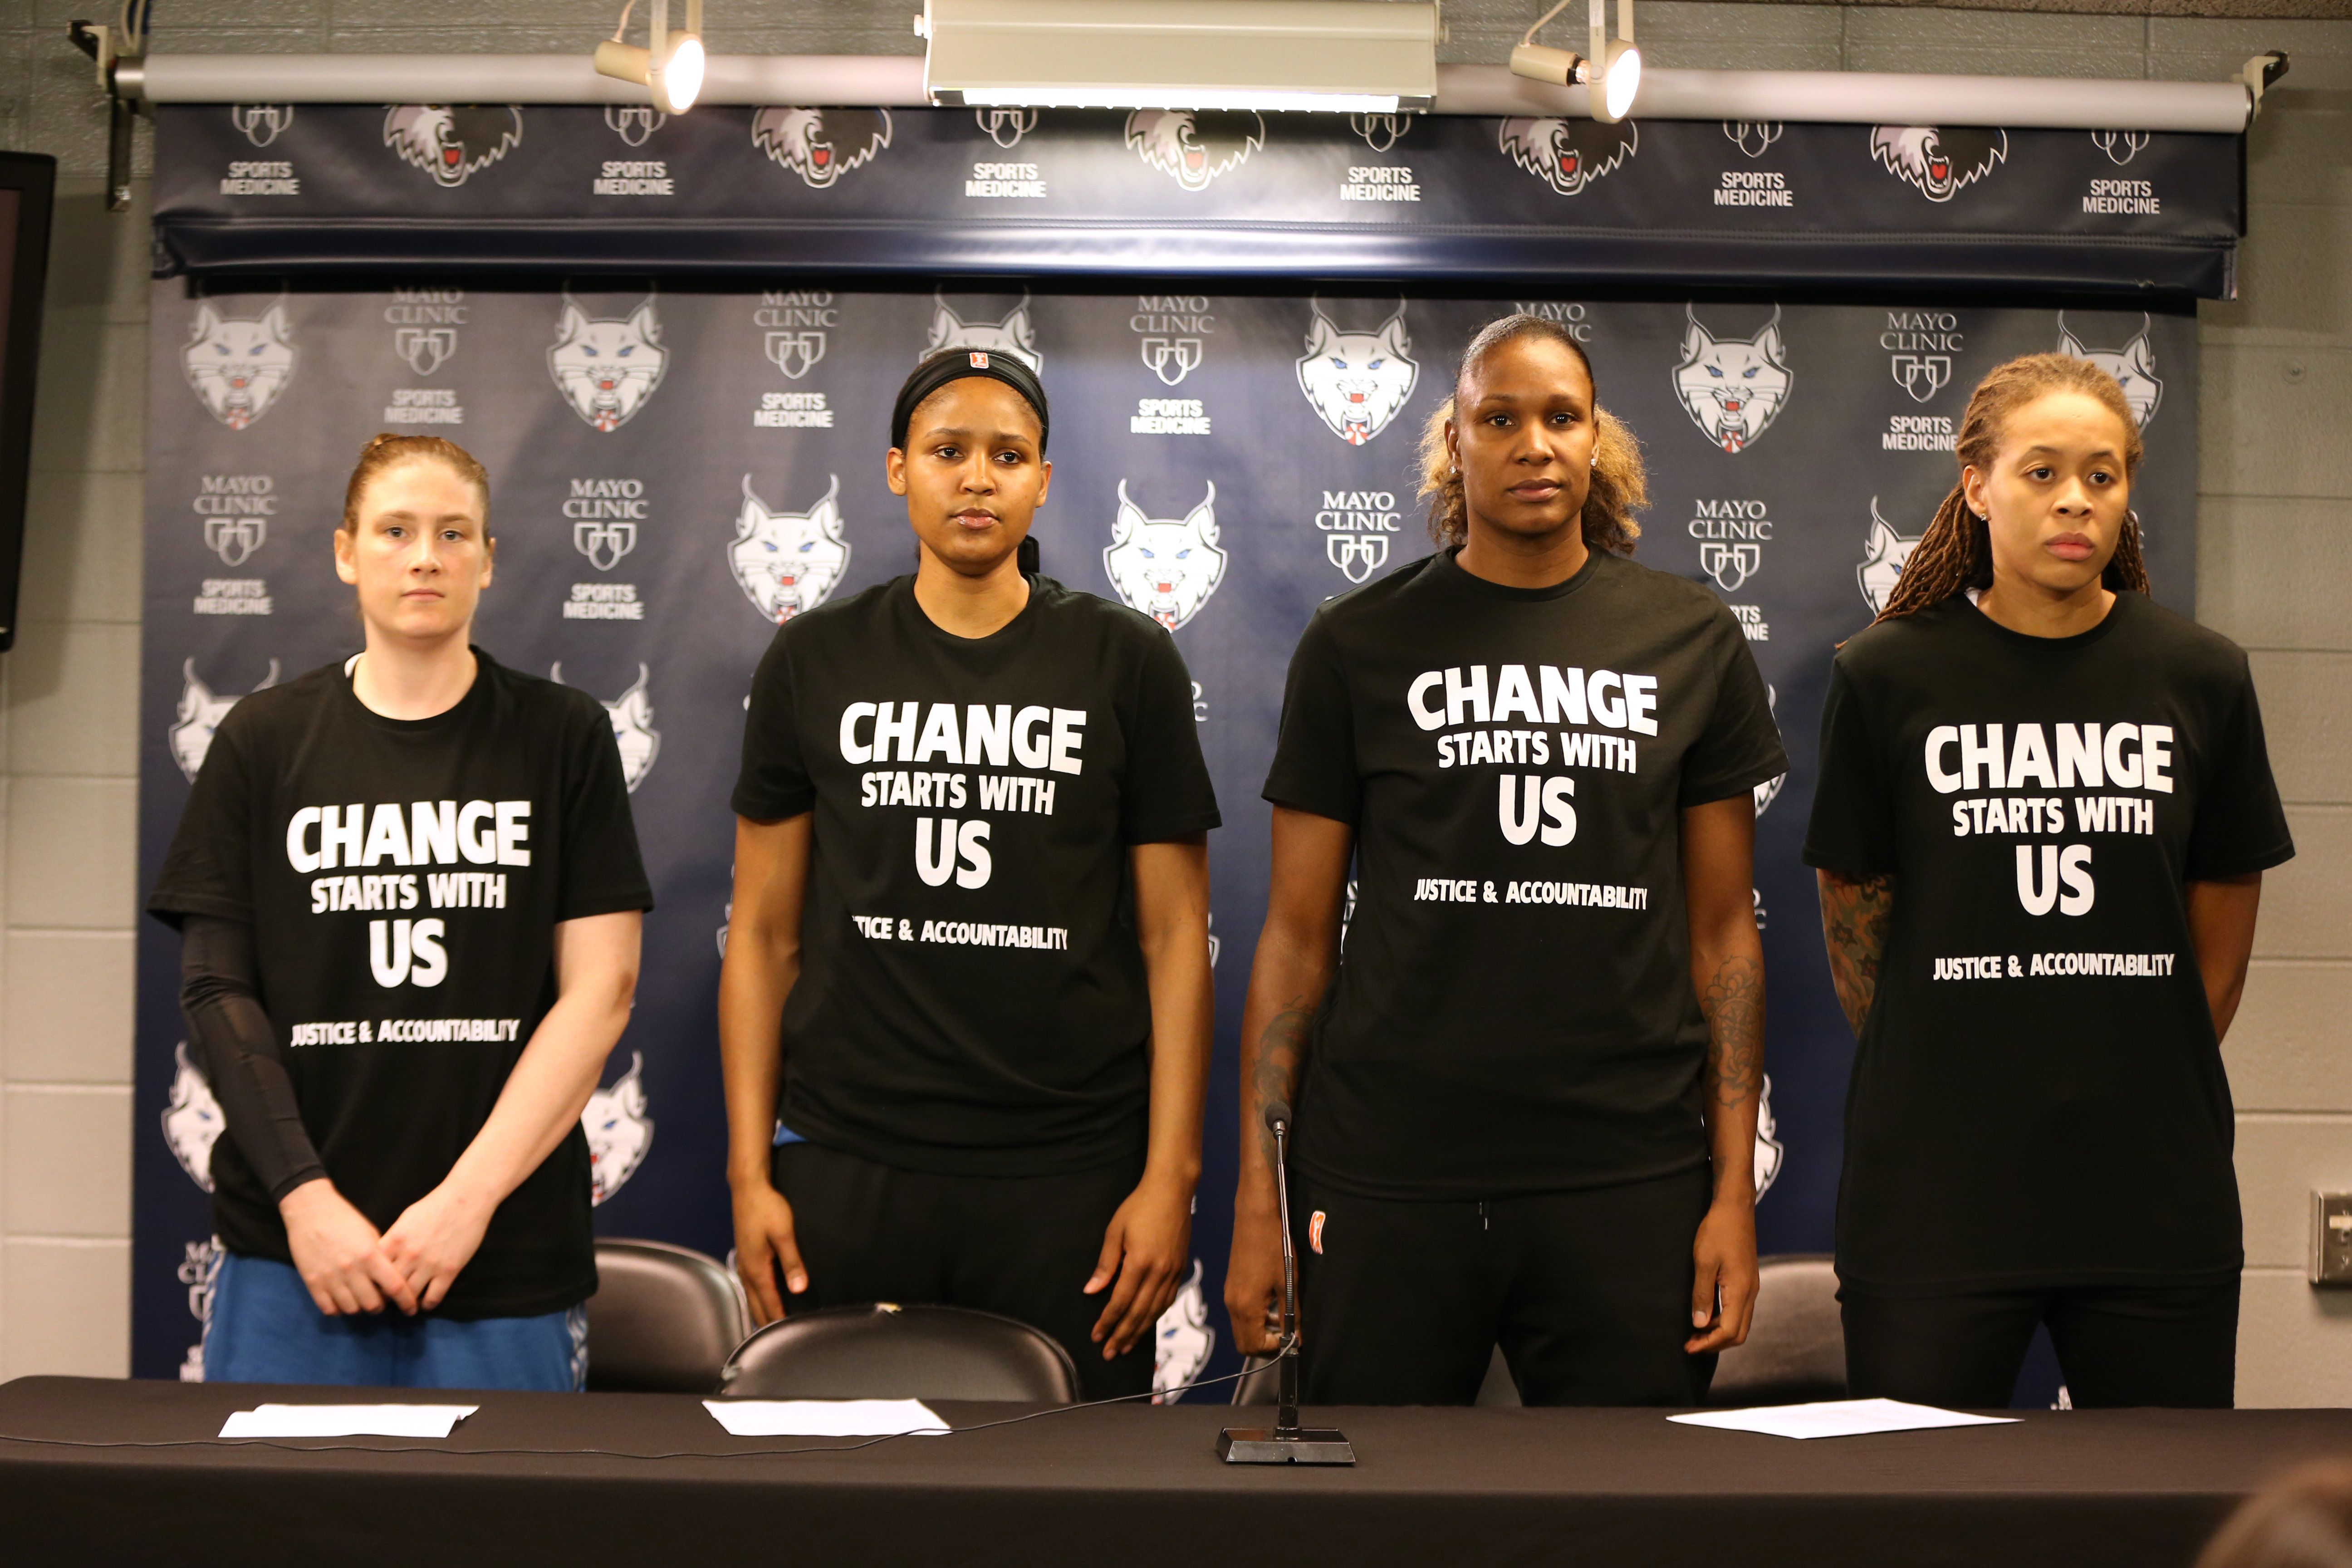 MINNEAPOLIS, MN - JULY 9:  Lindsay Whalen #13, Maya Moore #23, Rebekkah Brunson #32, and Seimone Augustus #33 of the Minnesota Lynx attend a press conference before the game against the Dallas Wings on July 9, 2016 at Target Center in Minneapolis, Minnesota. NOTE TO USER: User expressly acknowledges and agrees that, by downloading and or using this Photograph, user is consenting to the terms and conditions of the Getty Images License Agreement. Mandatory Copyright Notice: Copyright 2016 NBAE (Photo by David Sherman/NBAE via Getty Images)